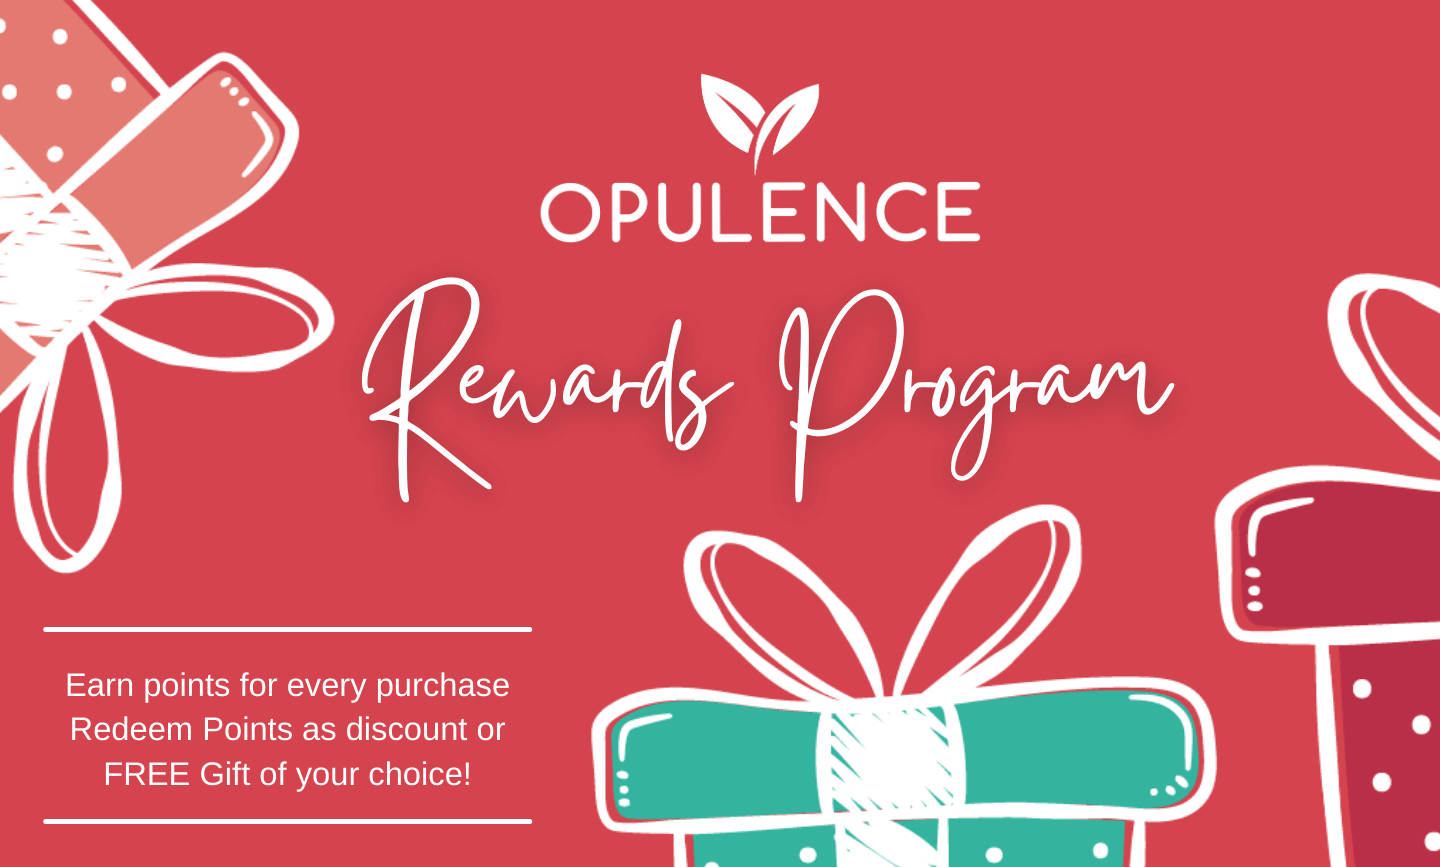 OPULENCE REWARDS PROGRAM - EARN POINTS FOR EVERY PURCHASE